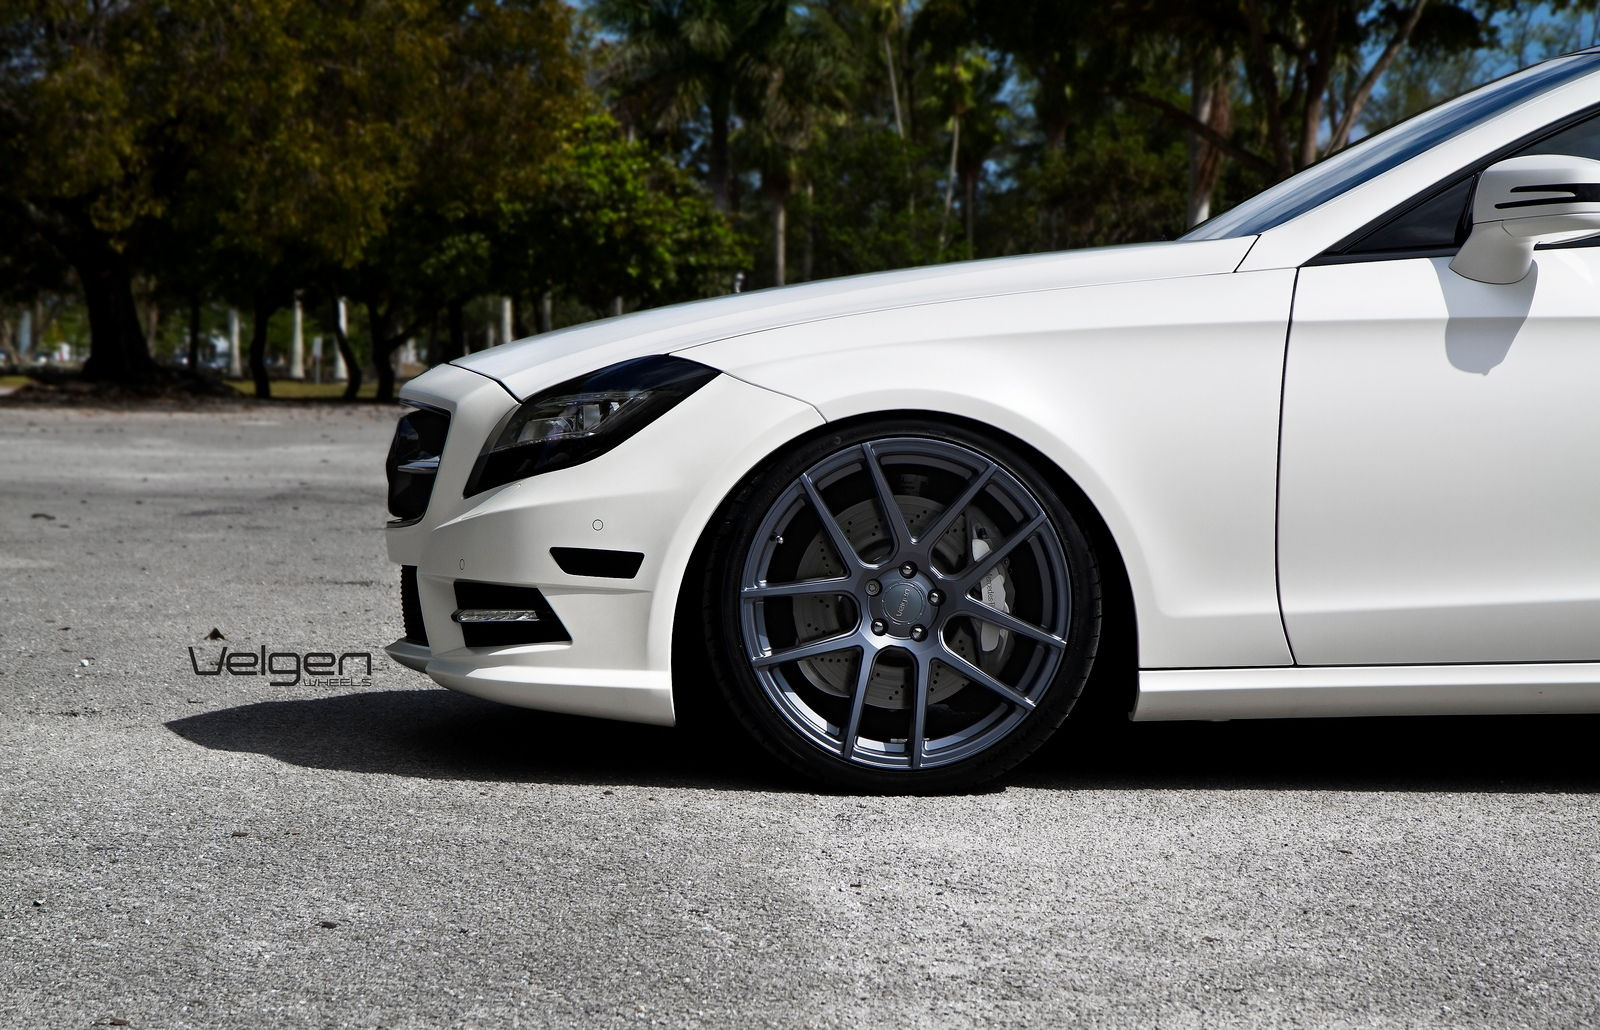 Maxresdefault furthermore Cls Cls Coupe Interior in addition Mercedes Sclass Mono Flangiato M also Mercedes Benz Cls Sedan Angular Rear besides Mercedes Benz Cls Class Sedan Cls Amg S Oem. on mercedes benz s cls550